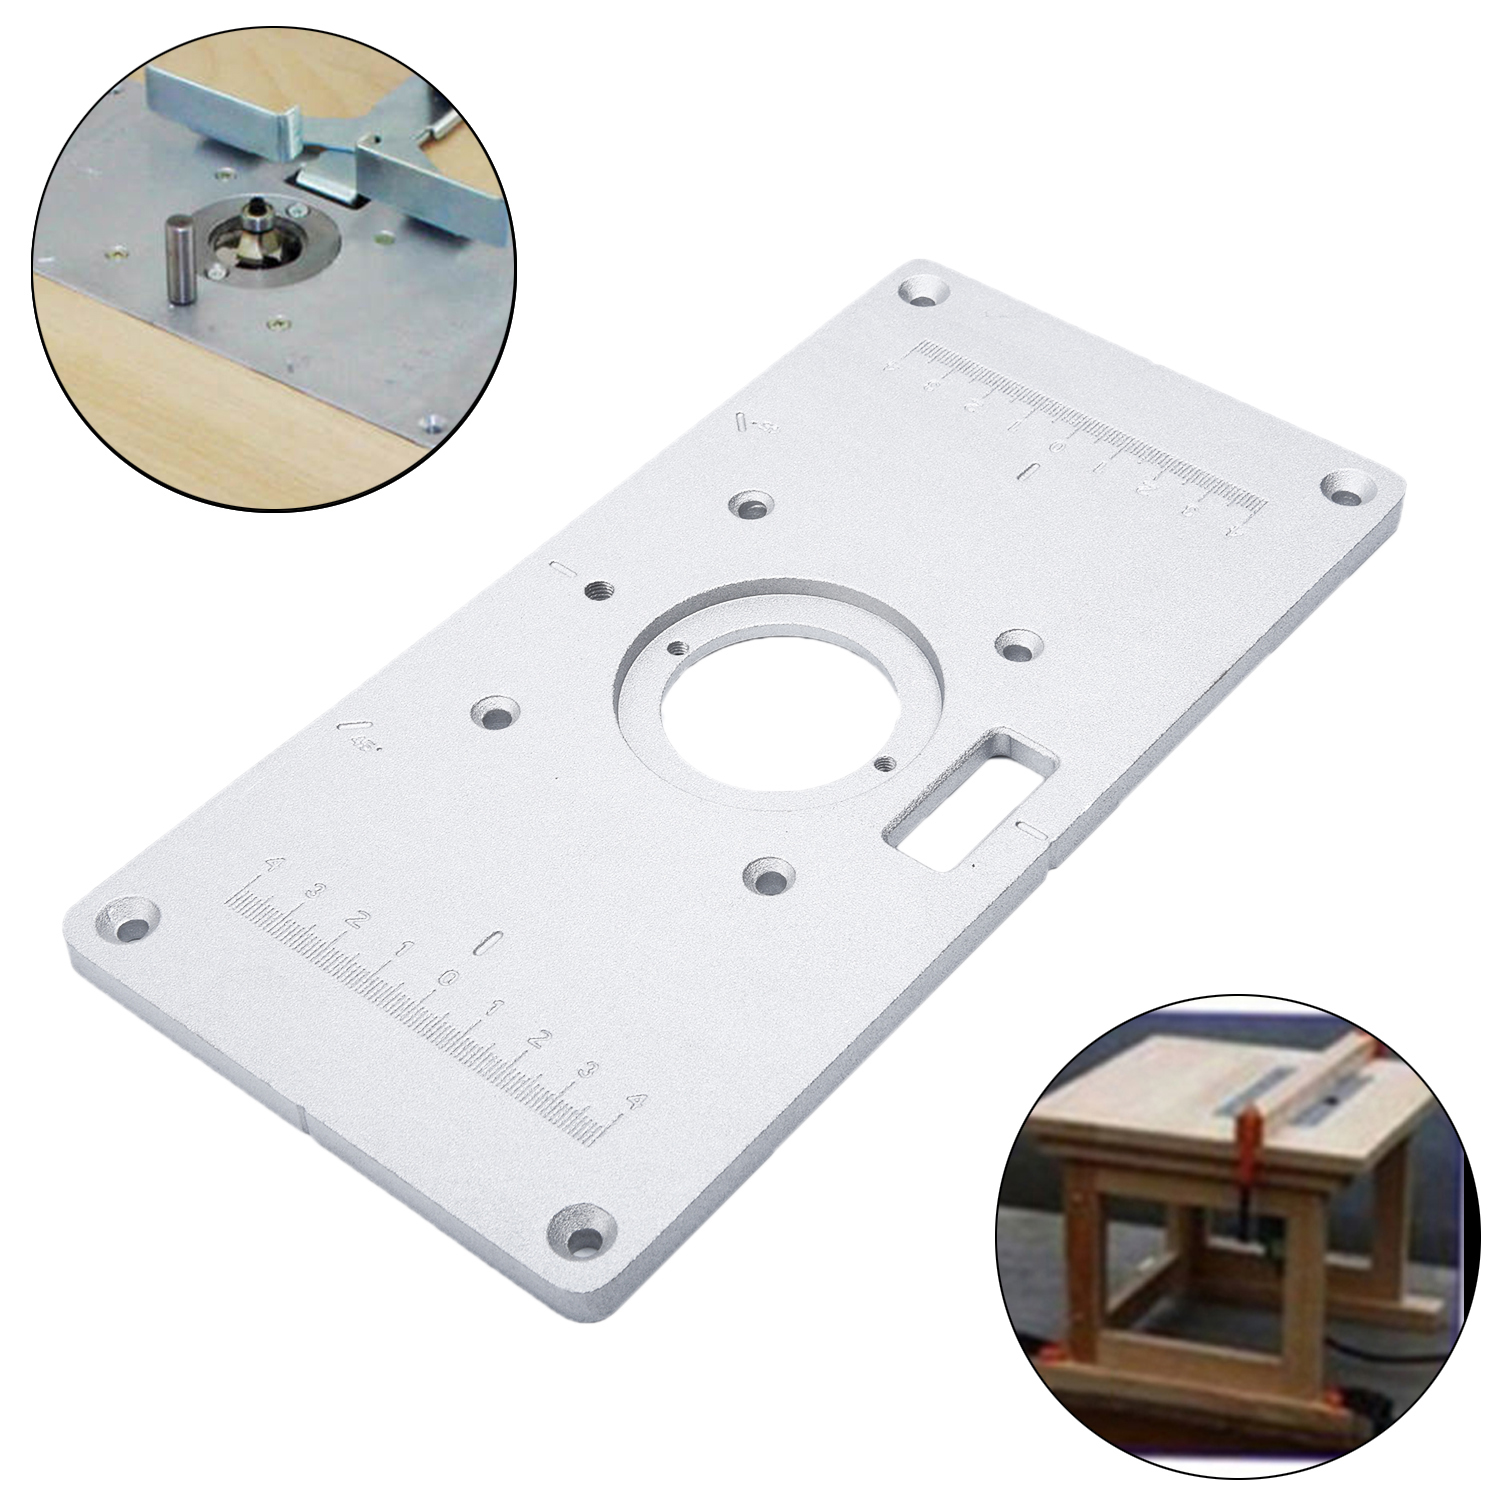 1PC Aluminum Router Table Insert Plate W/ 4Rings Screws 235mm X 120mm X 8mm Part